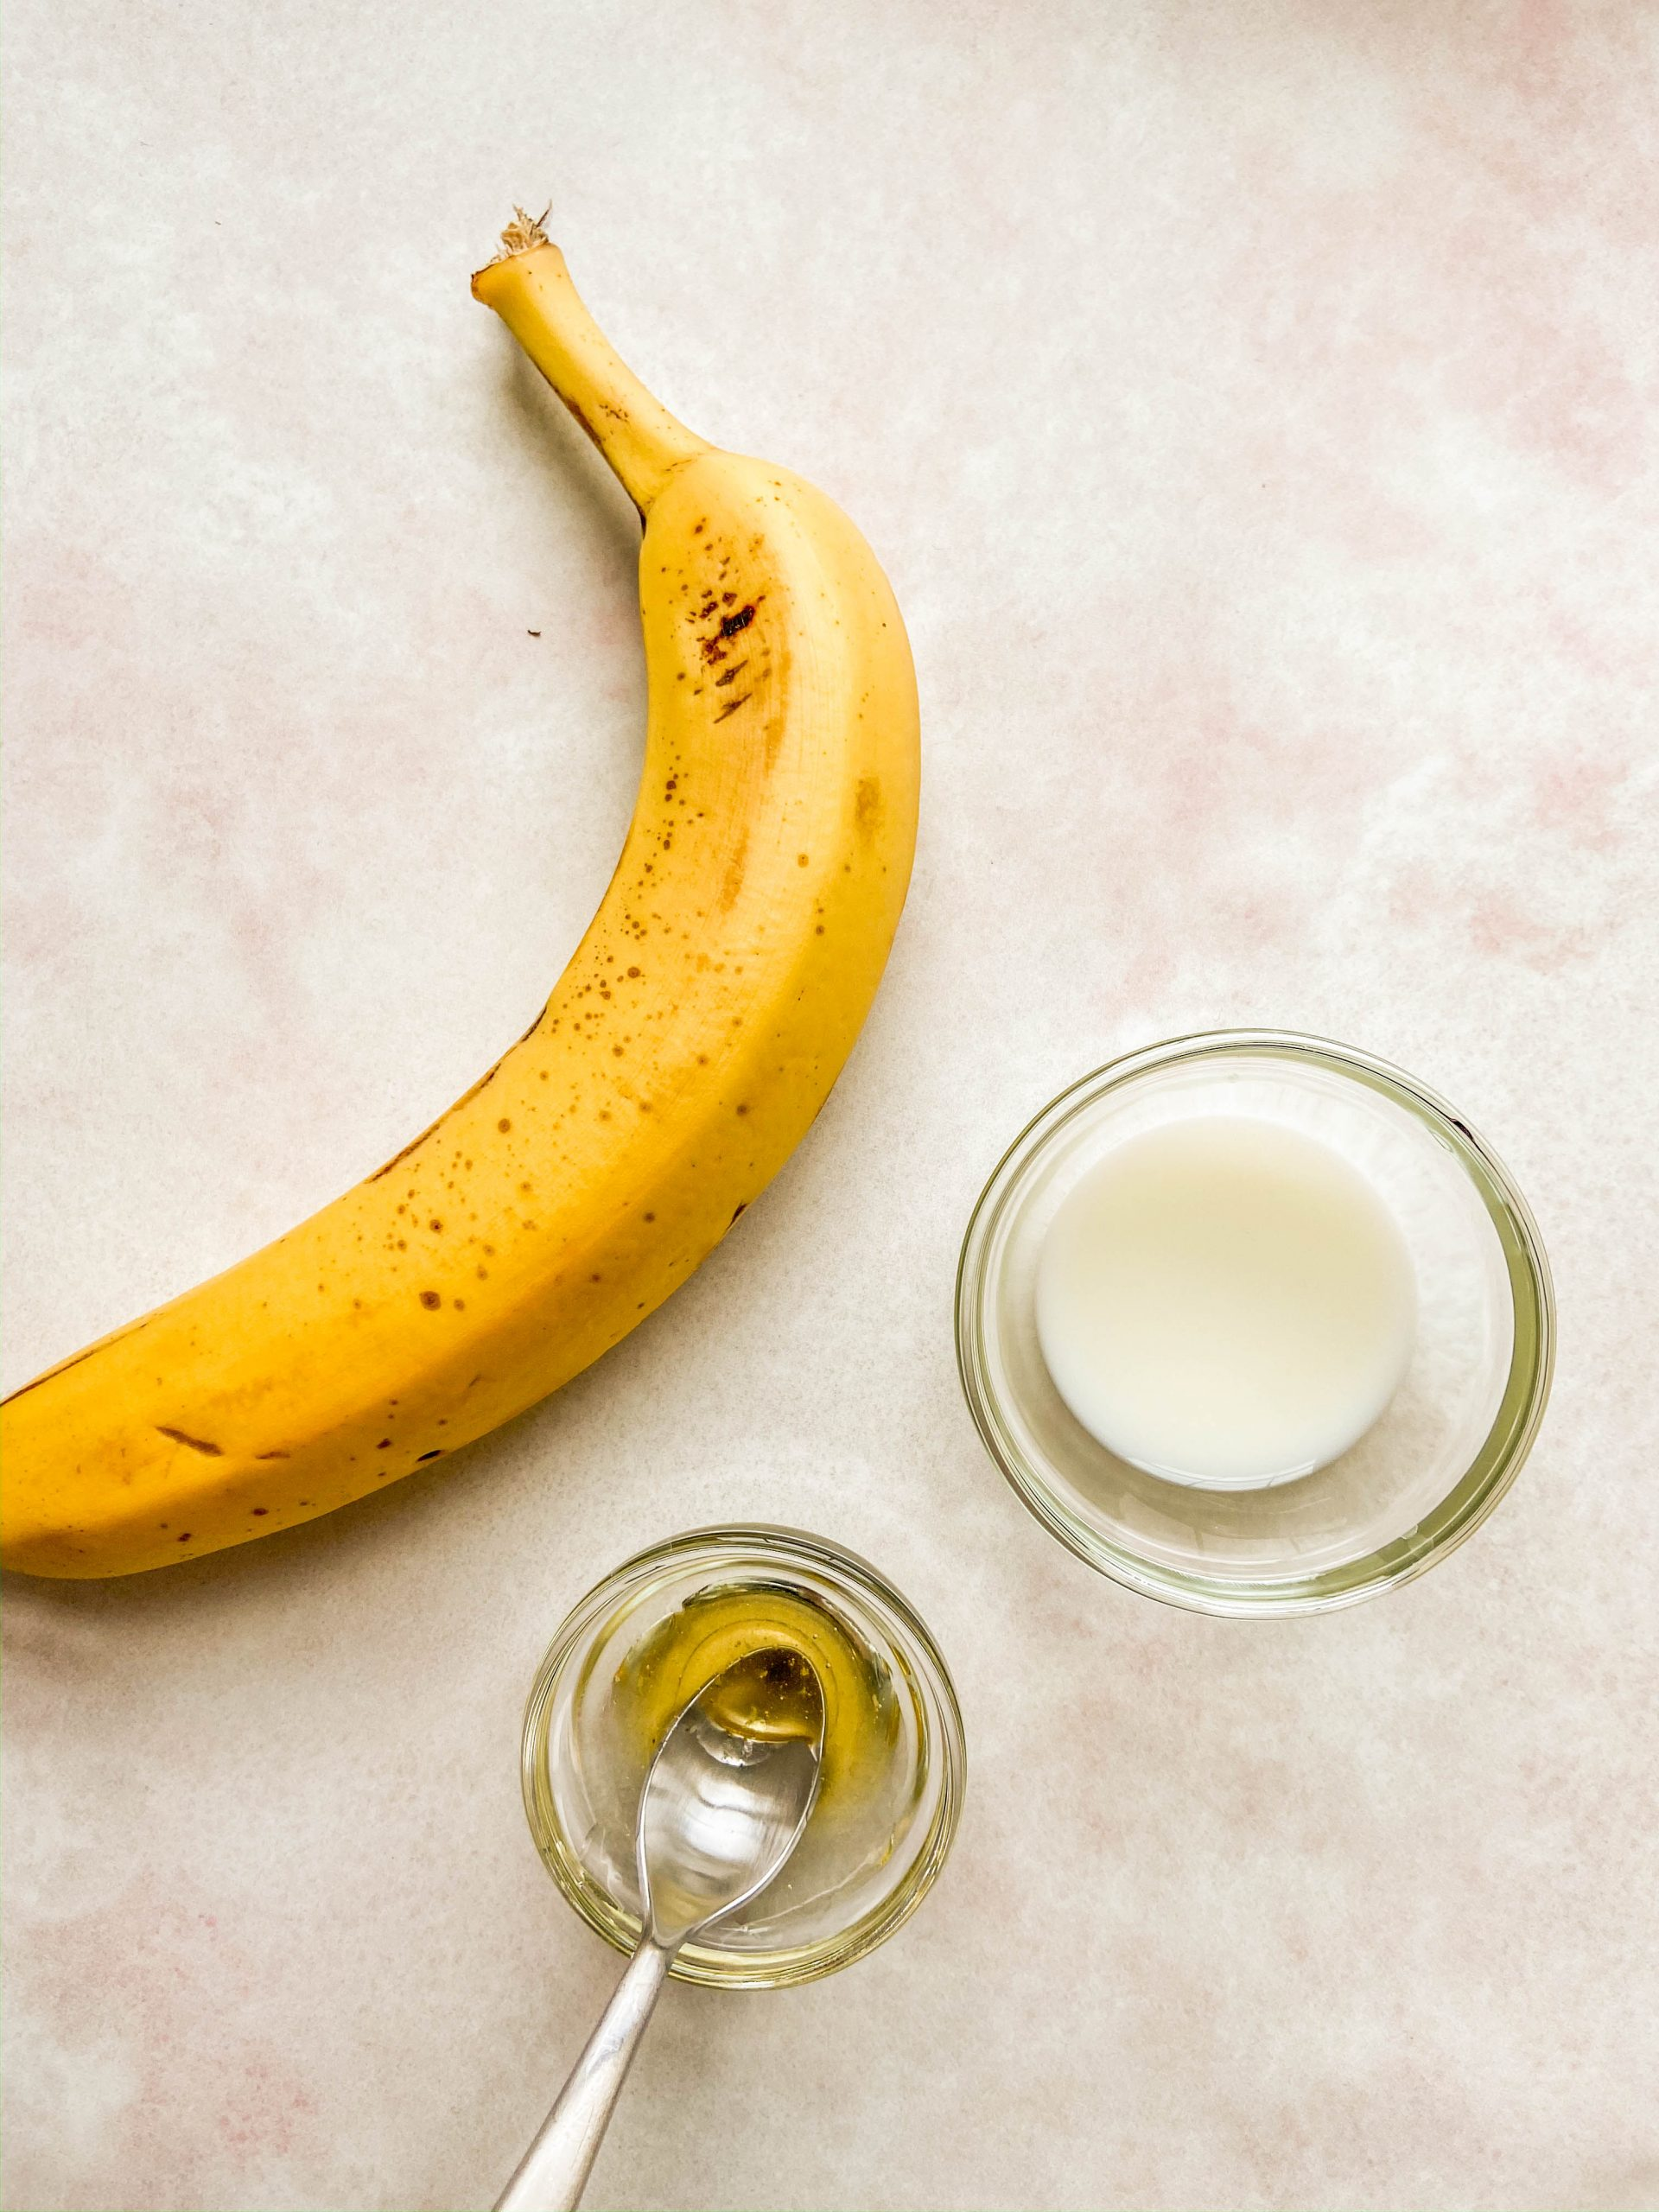 Ingredients for DIY Banana Face Mask